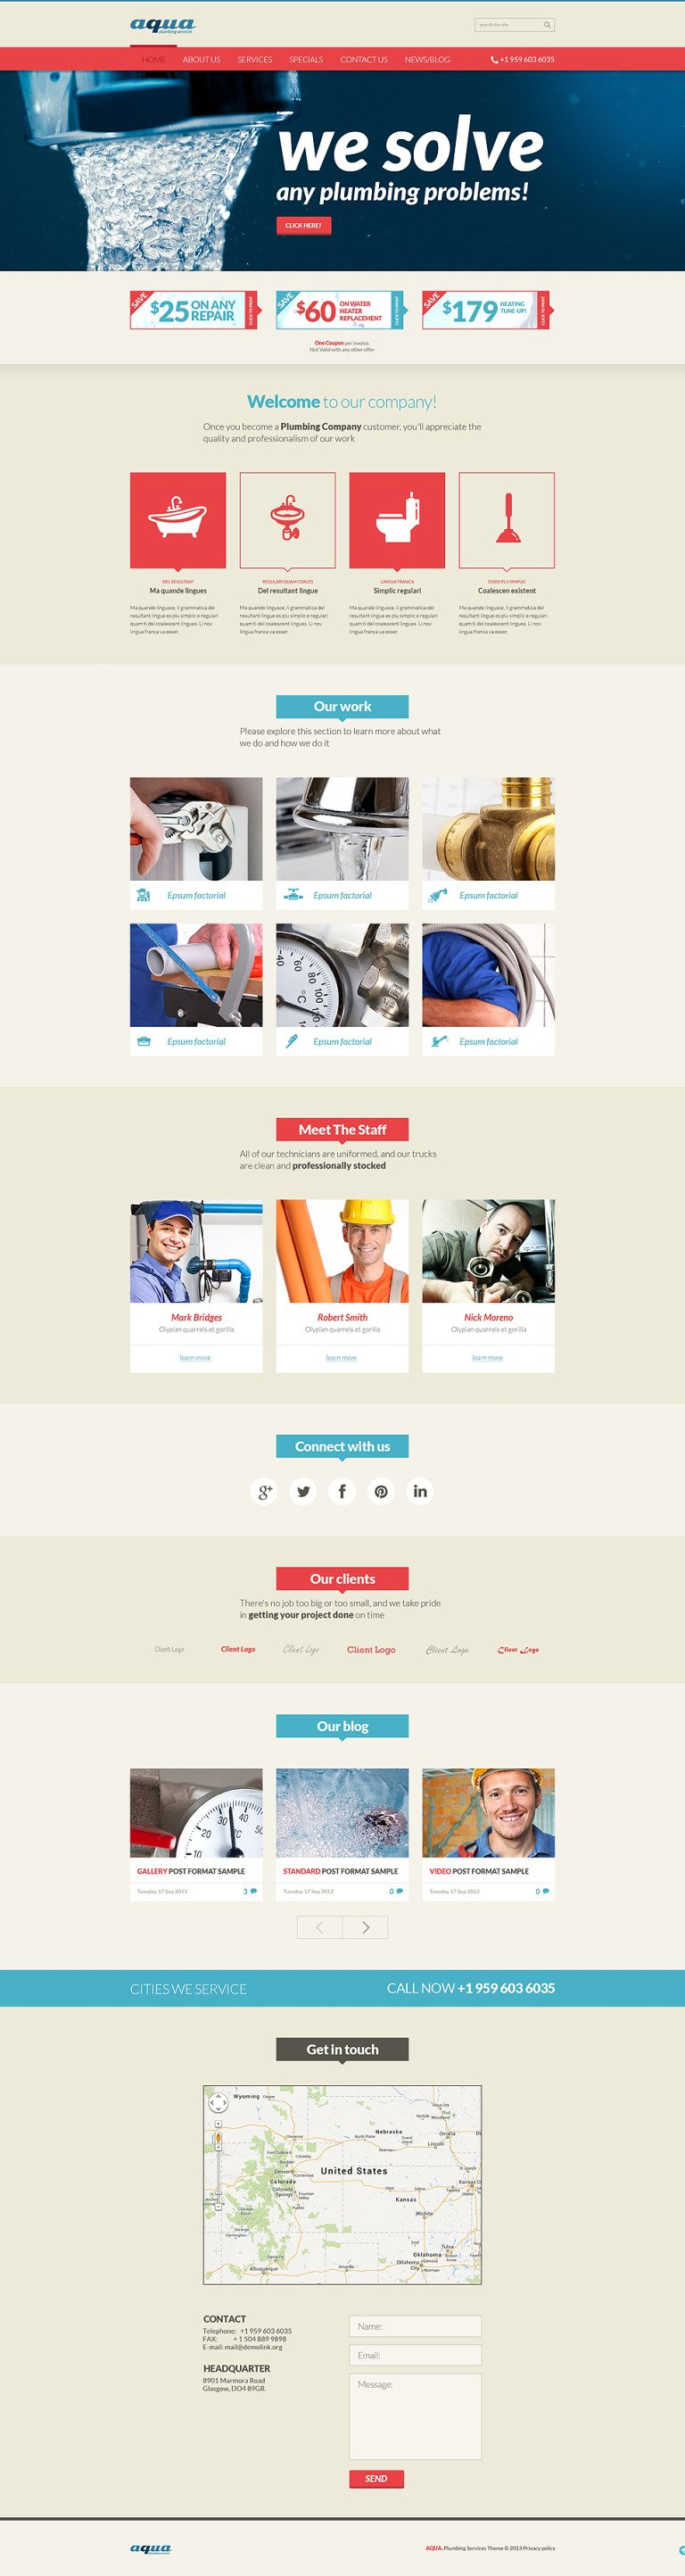 Plumbing Services Online Joomla Template New Screenshots BIG